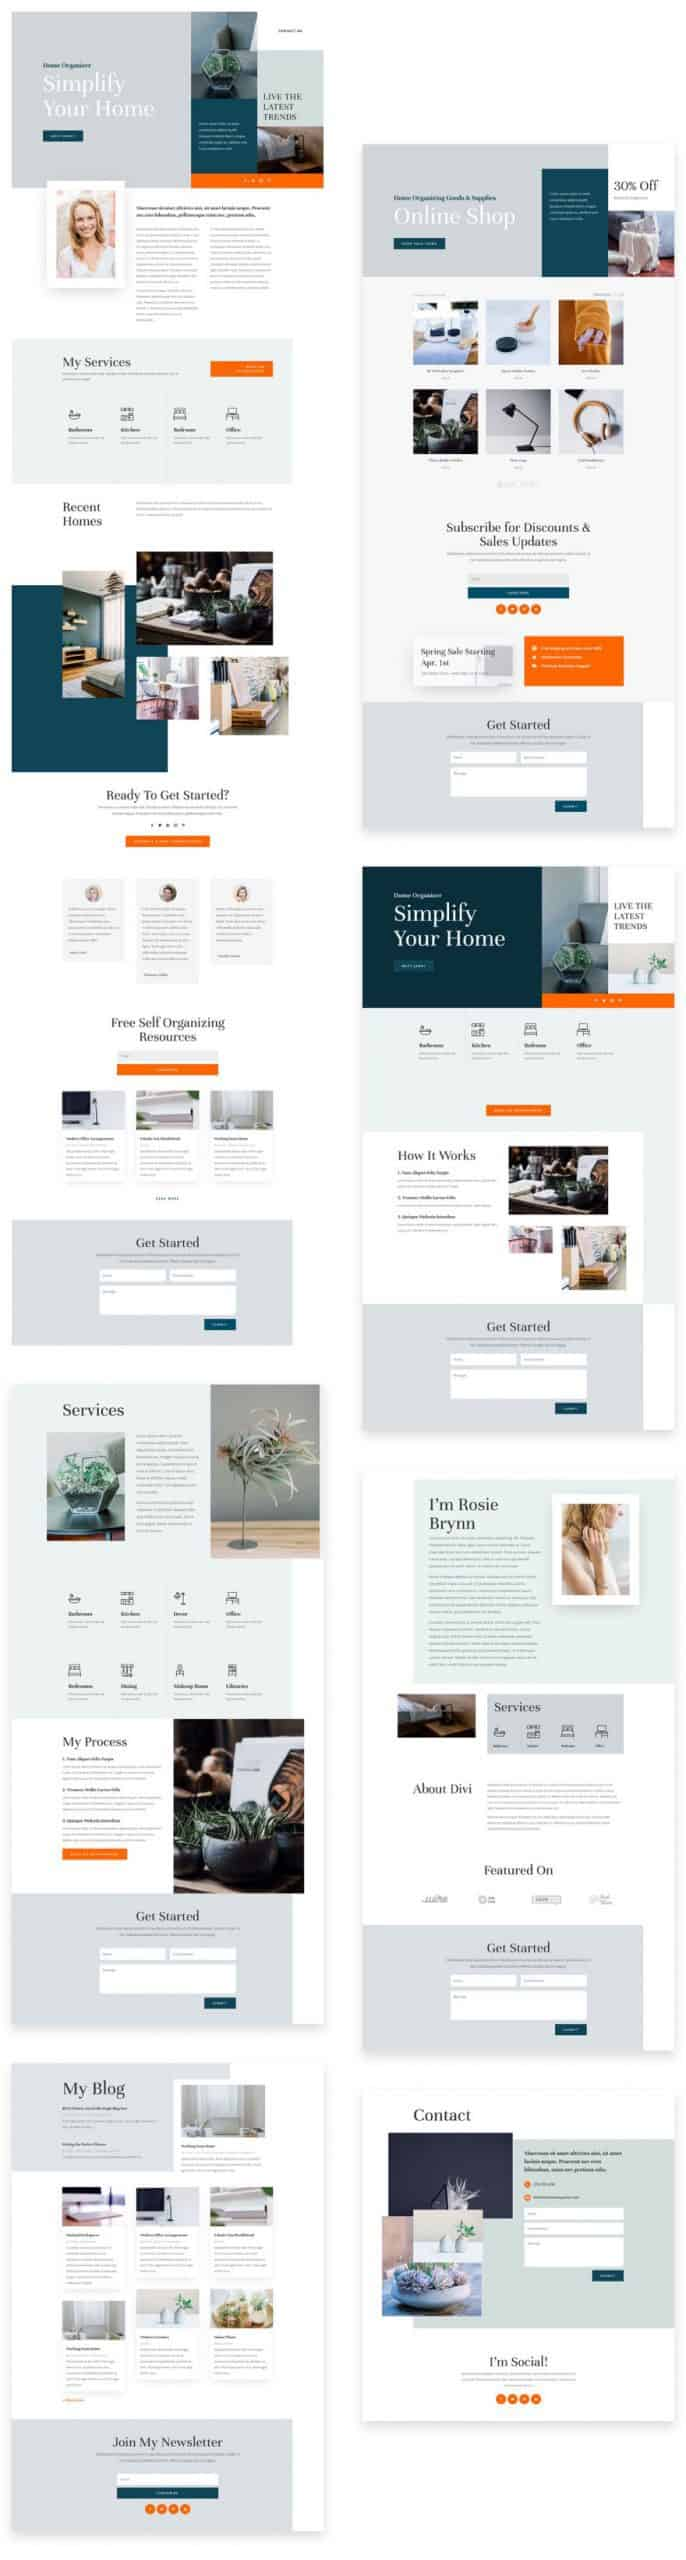 Home Organizer Divi Layout Pack